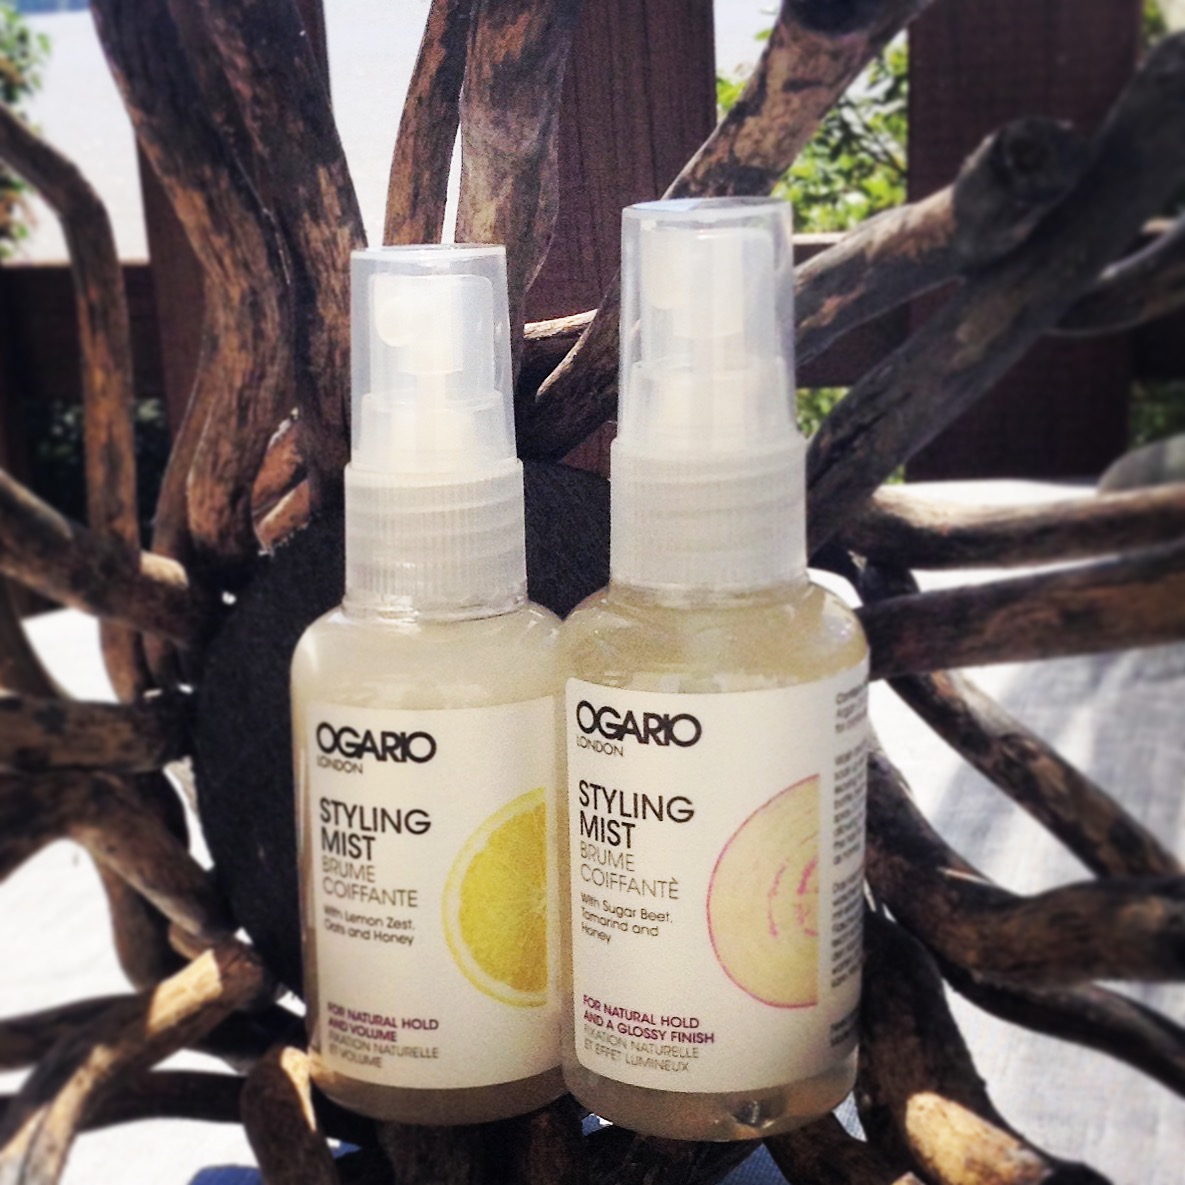 Ogario styling mist for volume and glossy finish set against wood backdrop